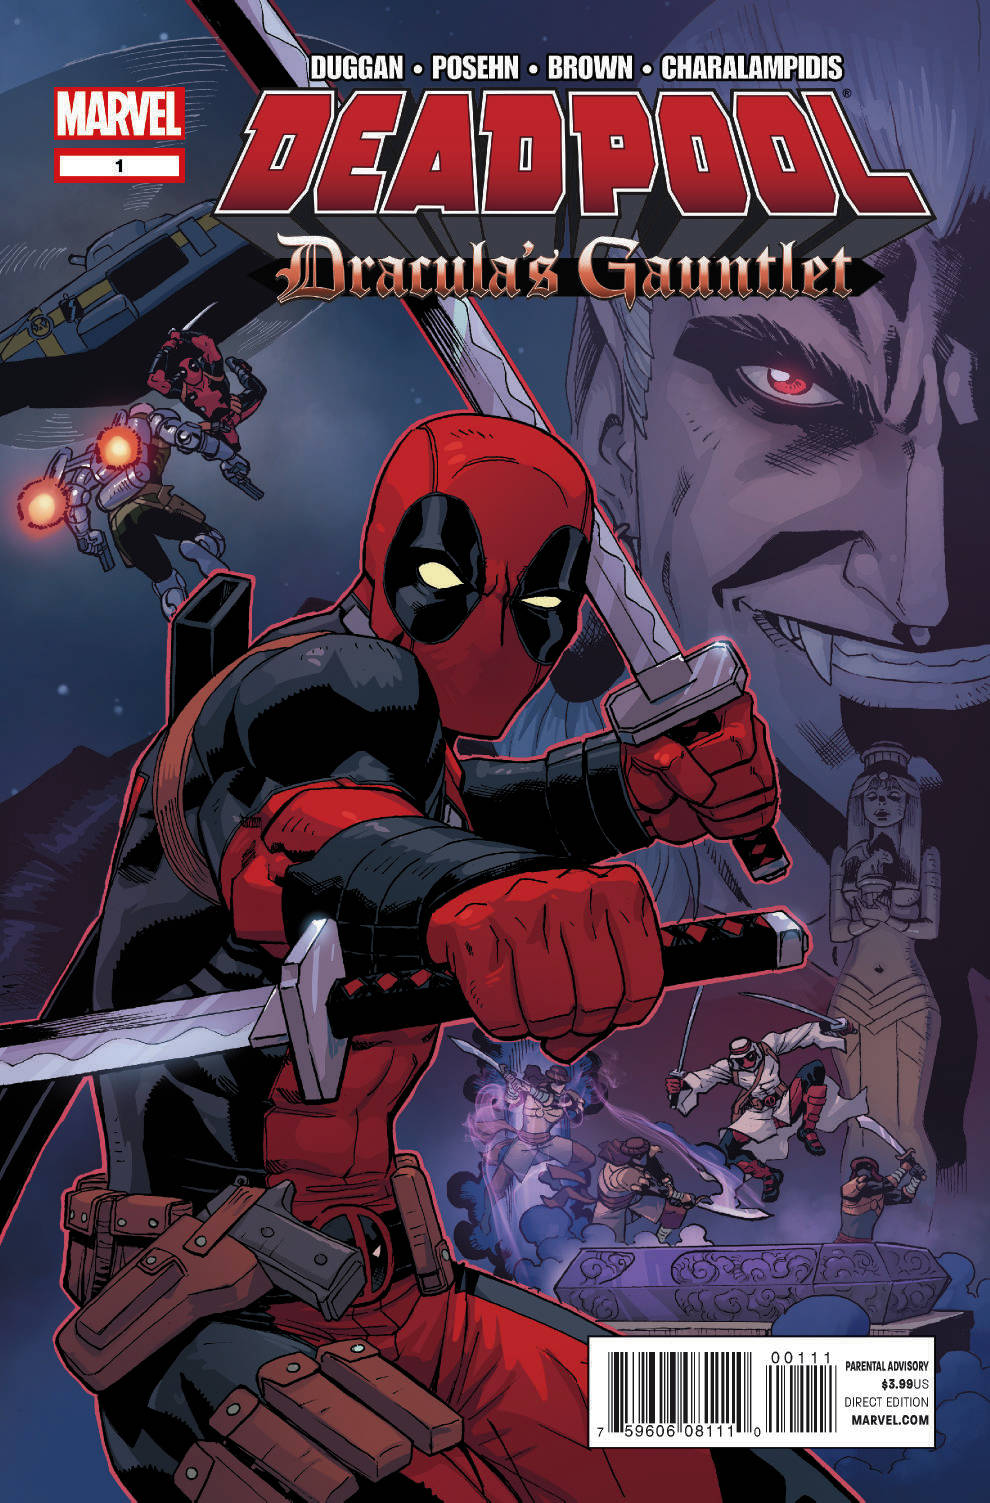 Deadpool: Dracula's Gauntlet (2014) #1